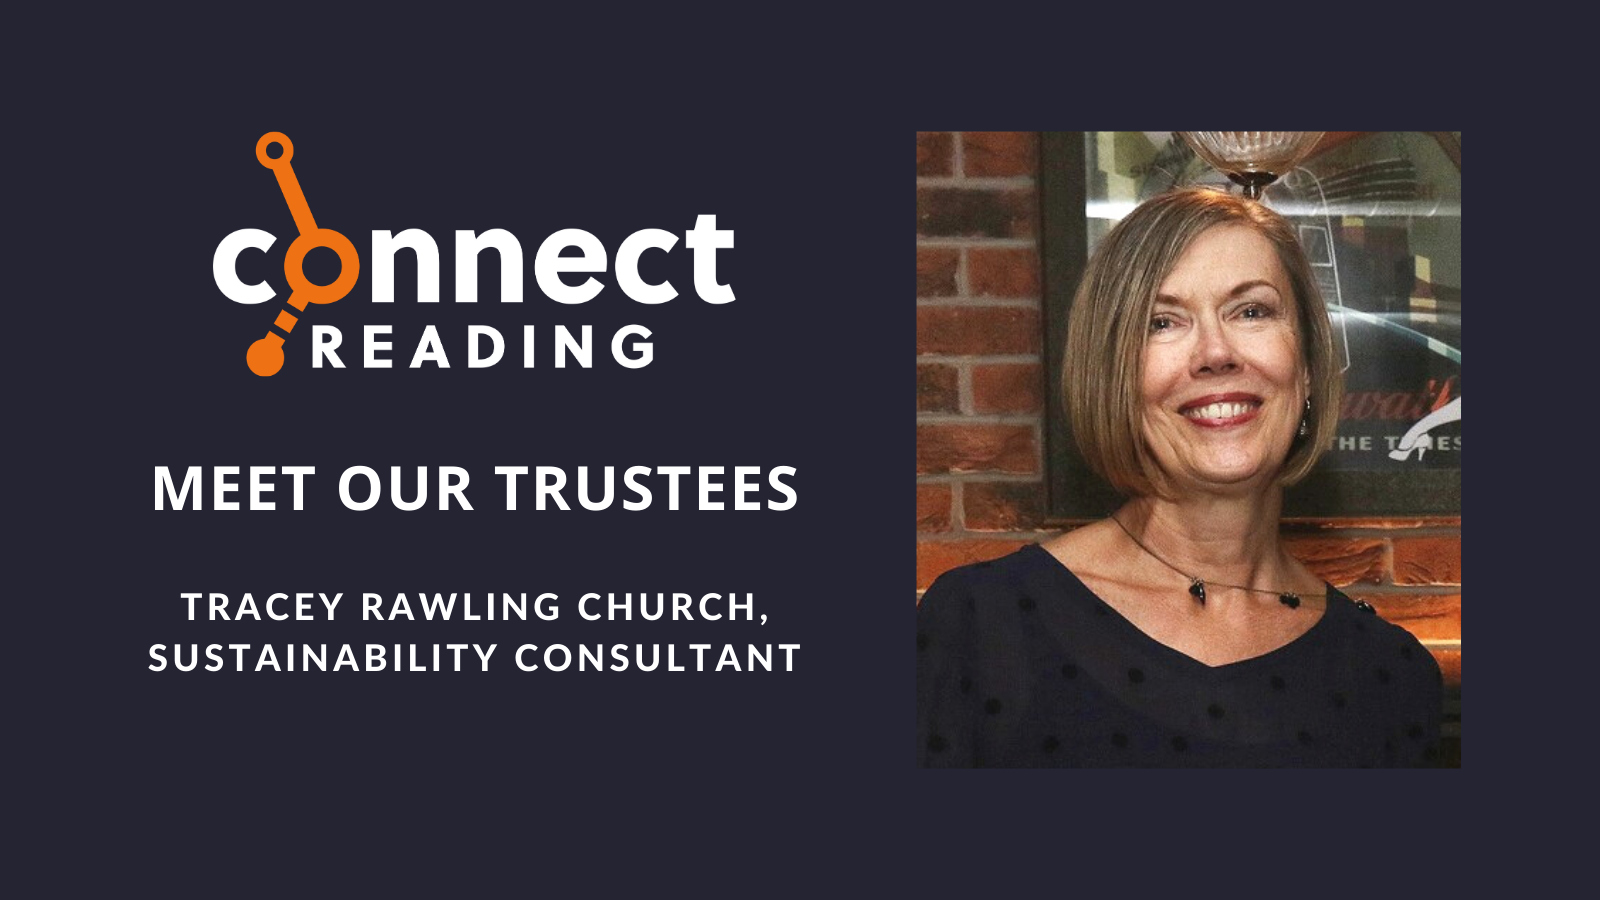 Meet our Trustees: Tracey Rawling Church